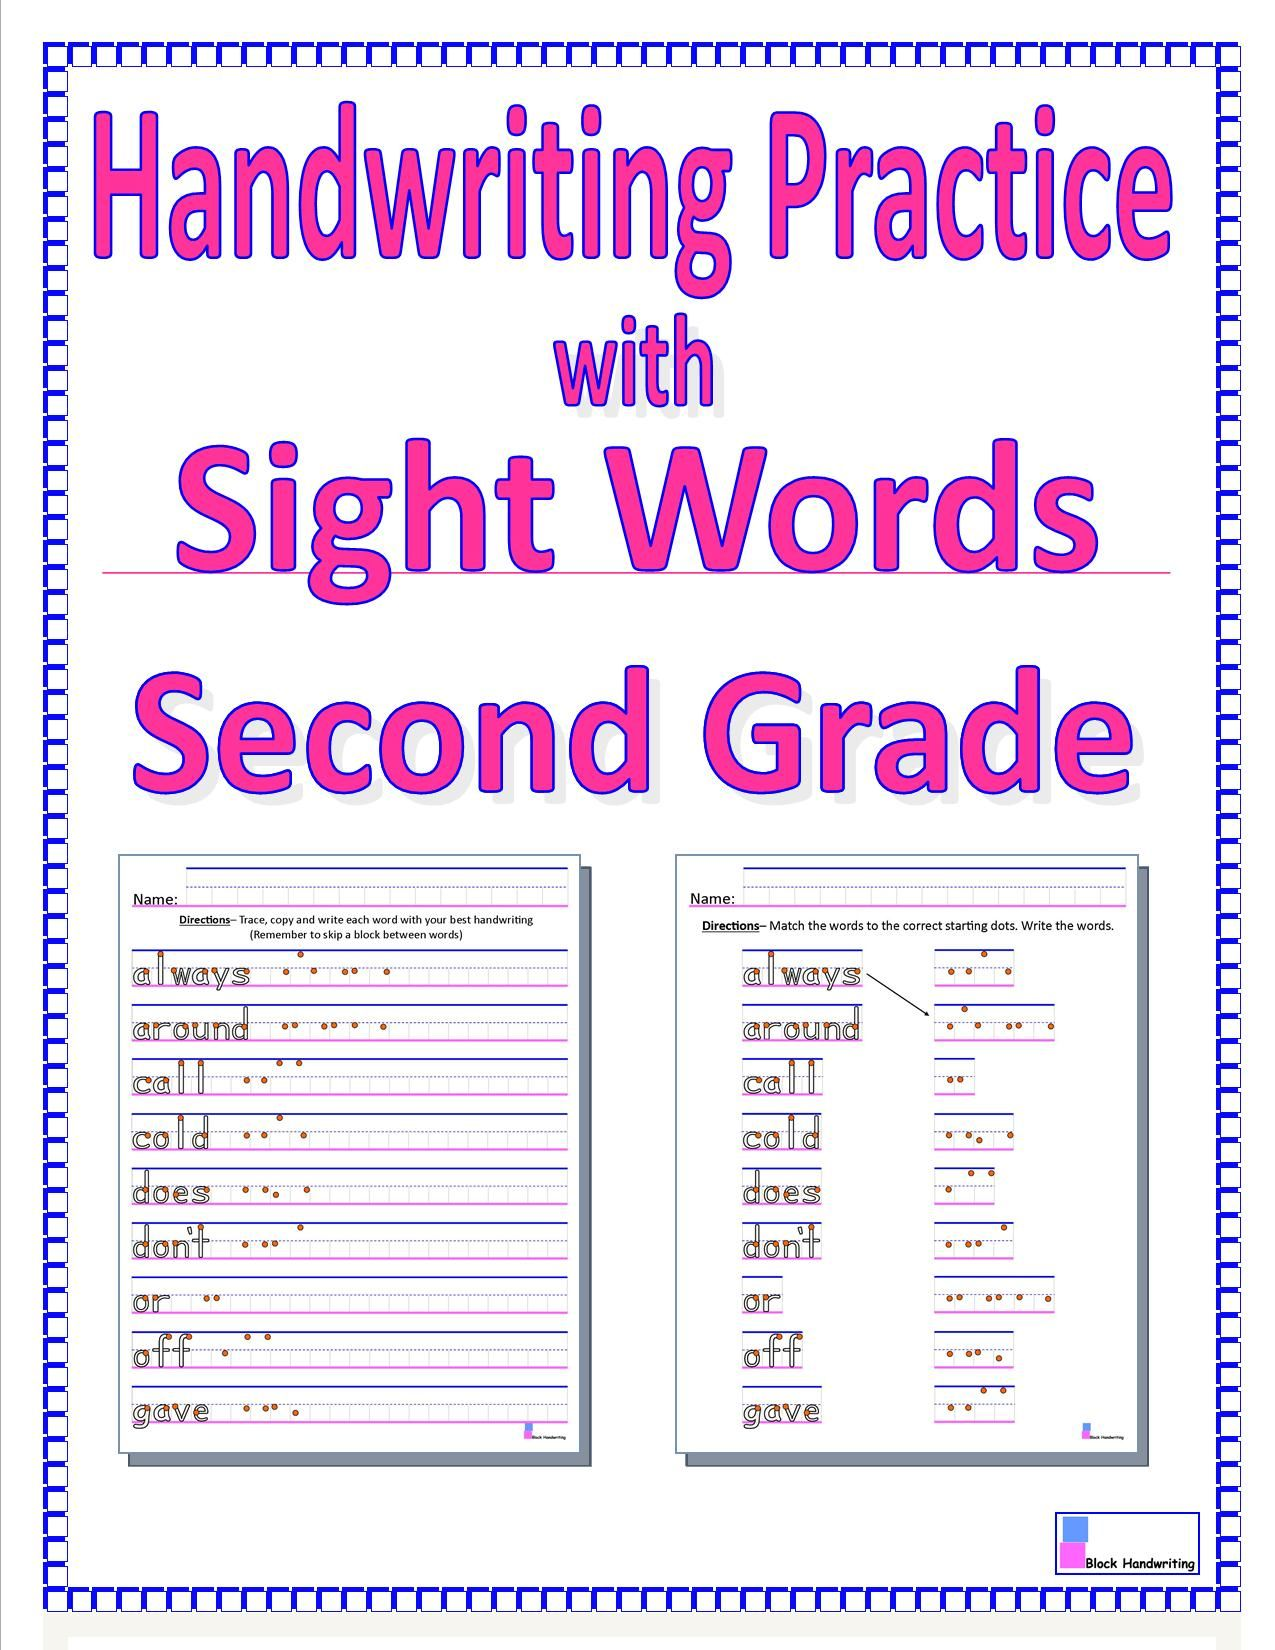 2nd grade sight words   Handwriting Practice with Second Grade Sight Words    Writing practice worksheets [ 1650 x 1275 Pixel ]